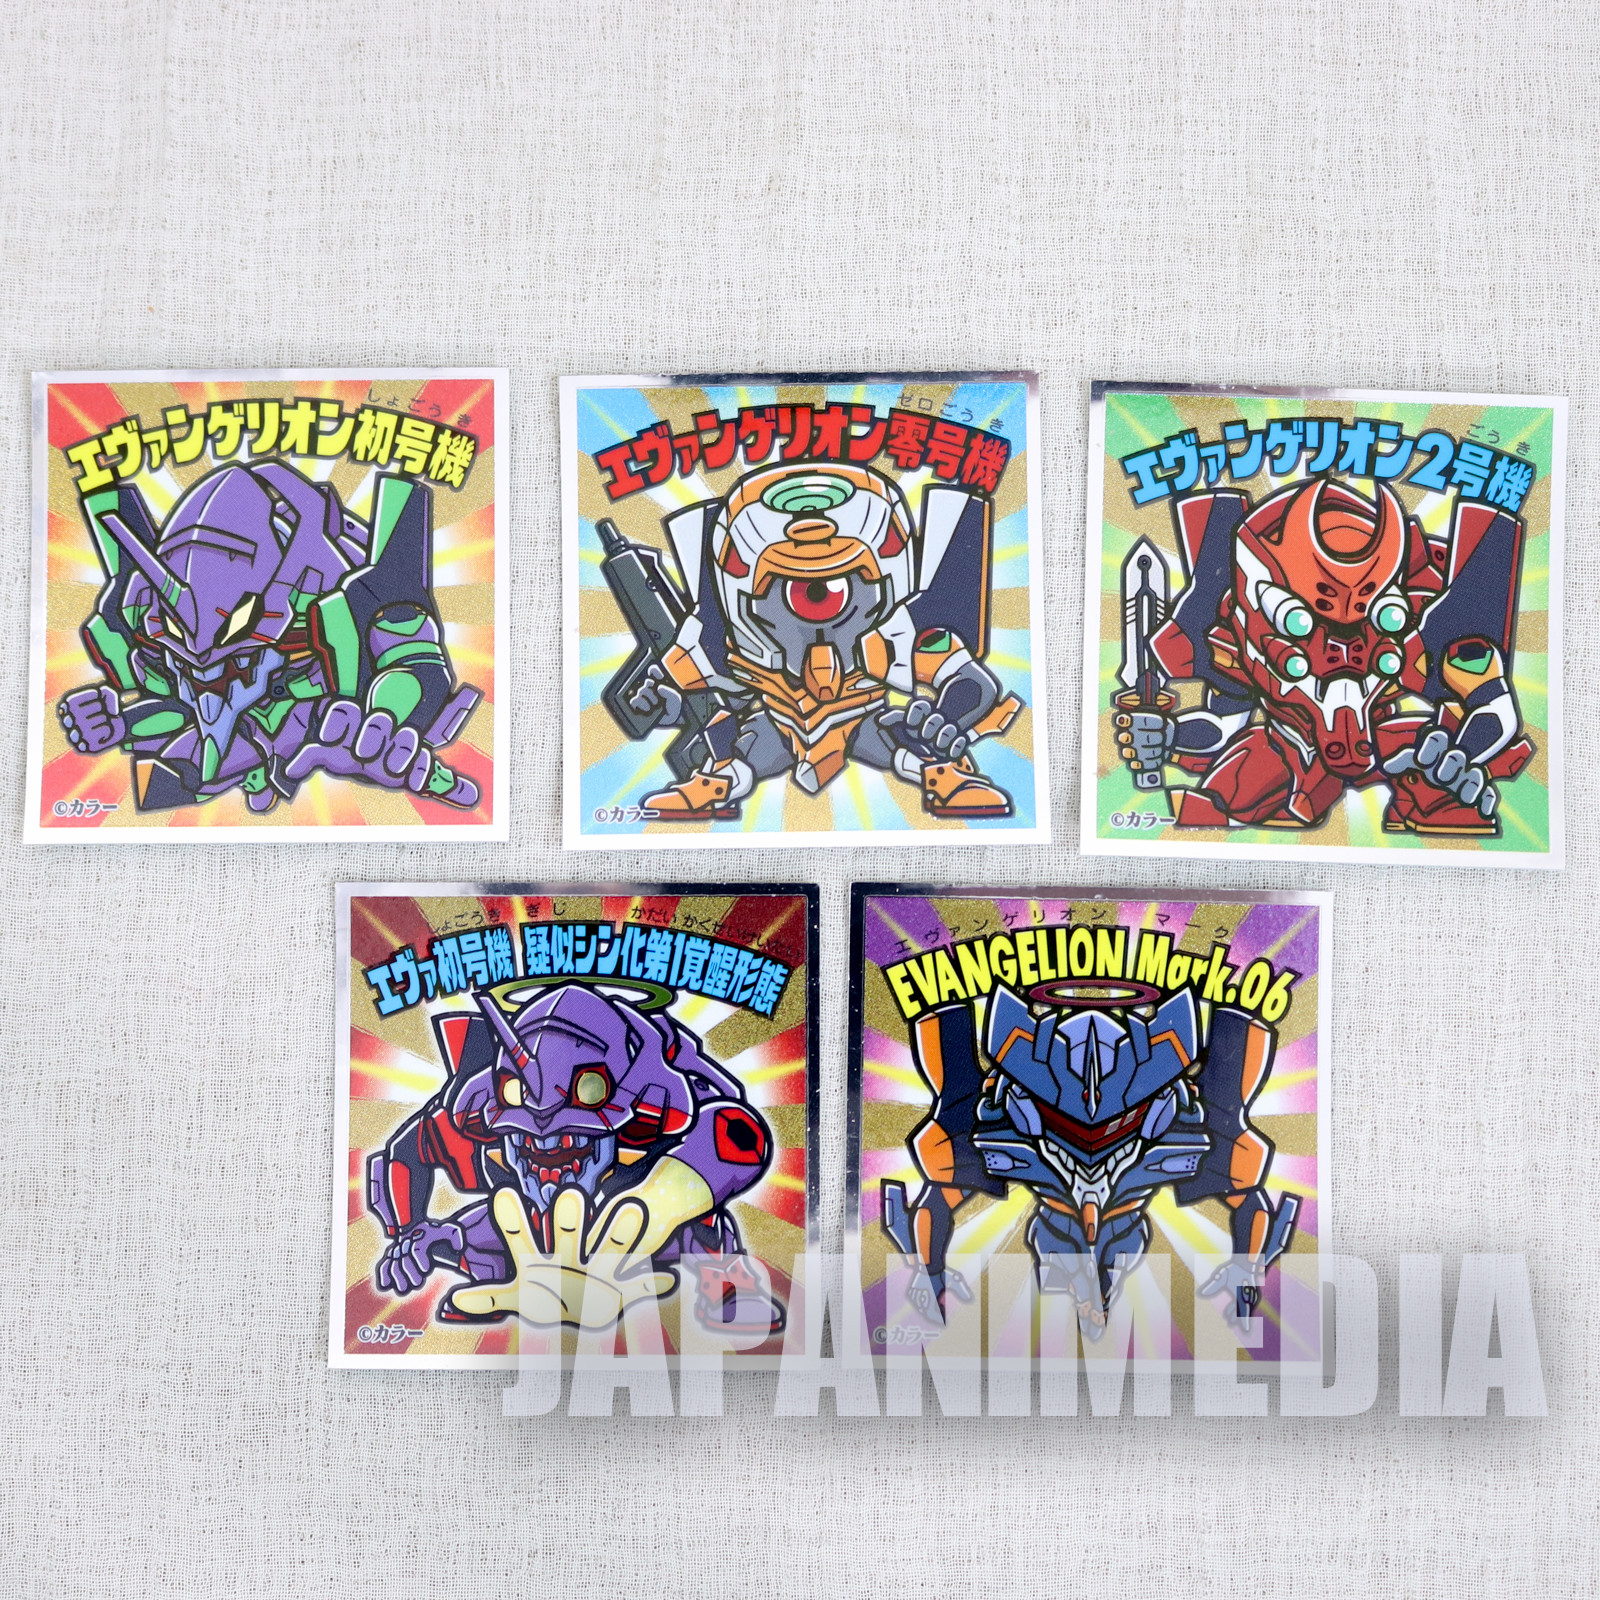 Evangelion EVA-KKURIMAN Sticker 5pc Set EVA series BIKKURIMAN JAPAN ANIME